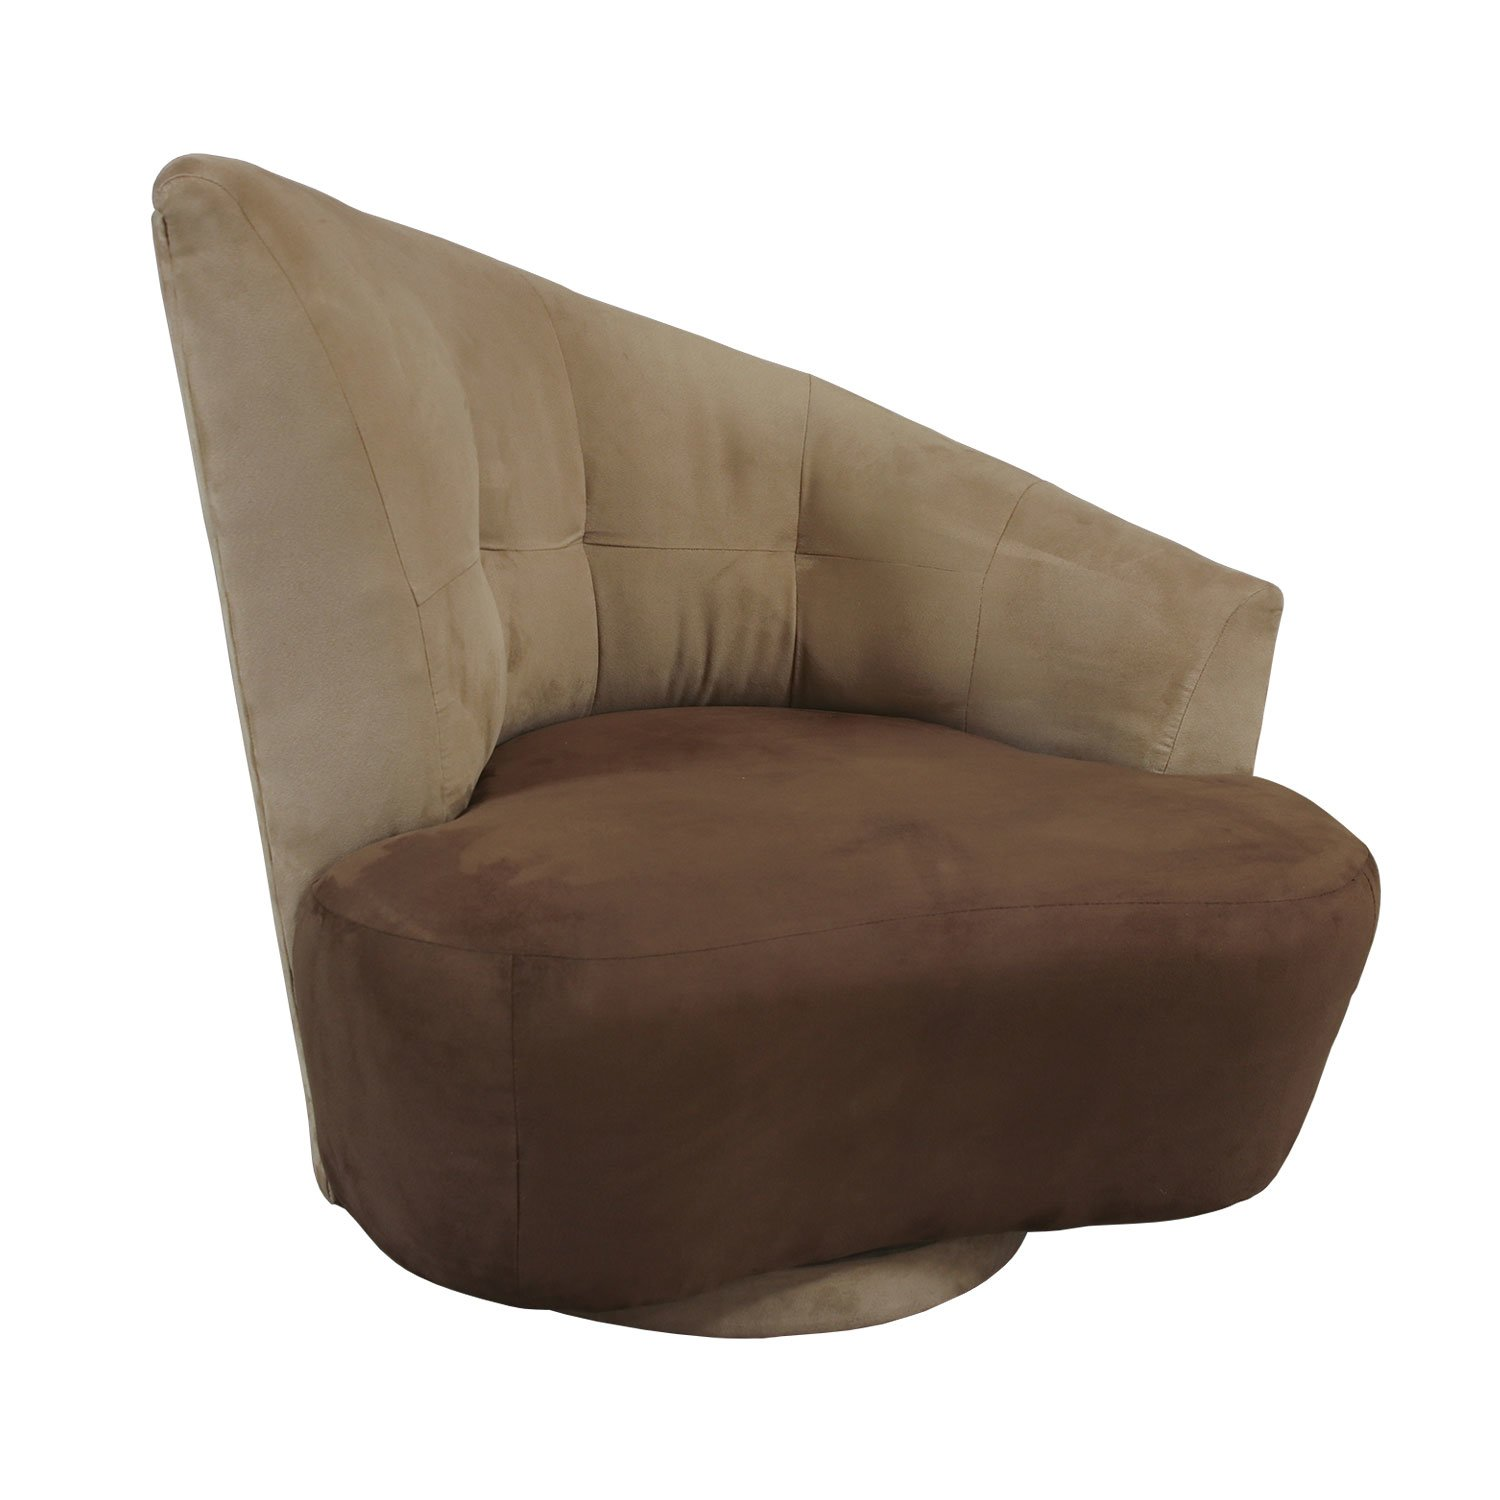 Lazar Odyssey Used Swivel Chair Tan And Brown Suede